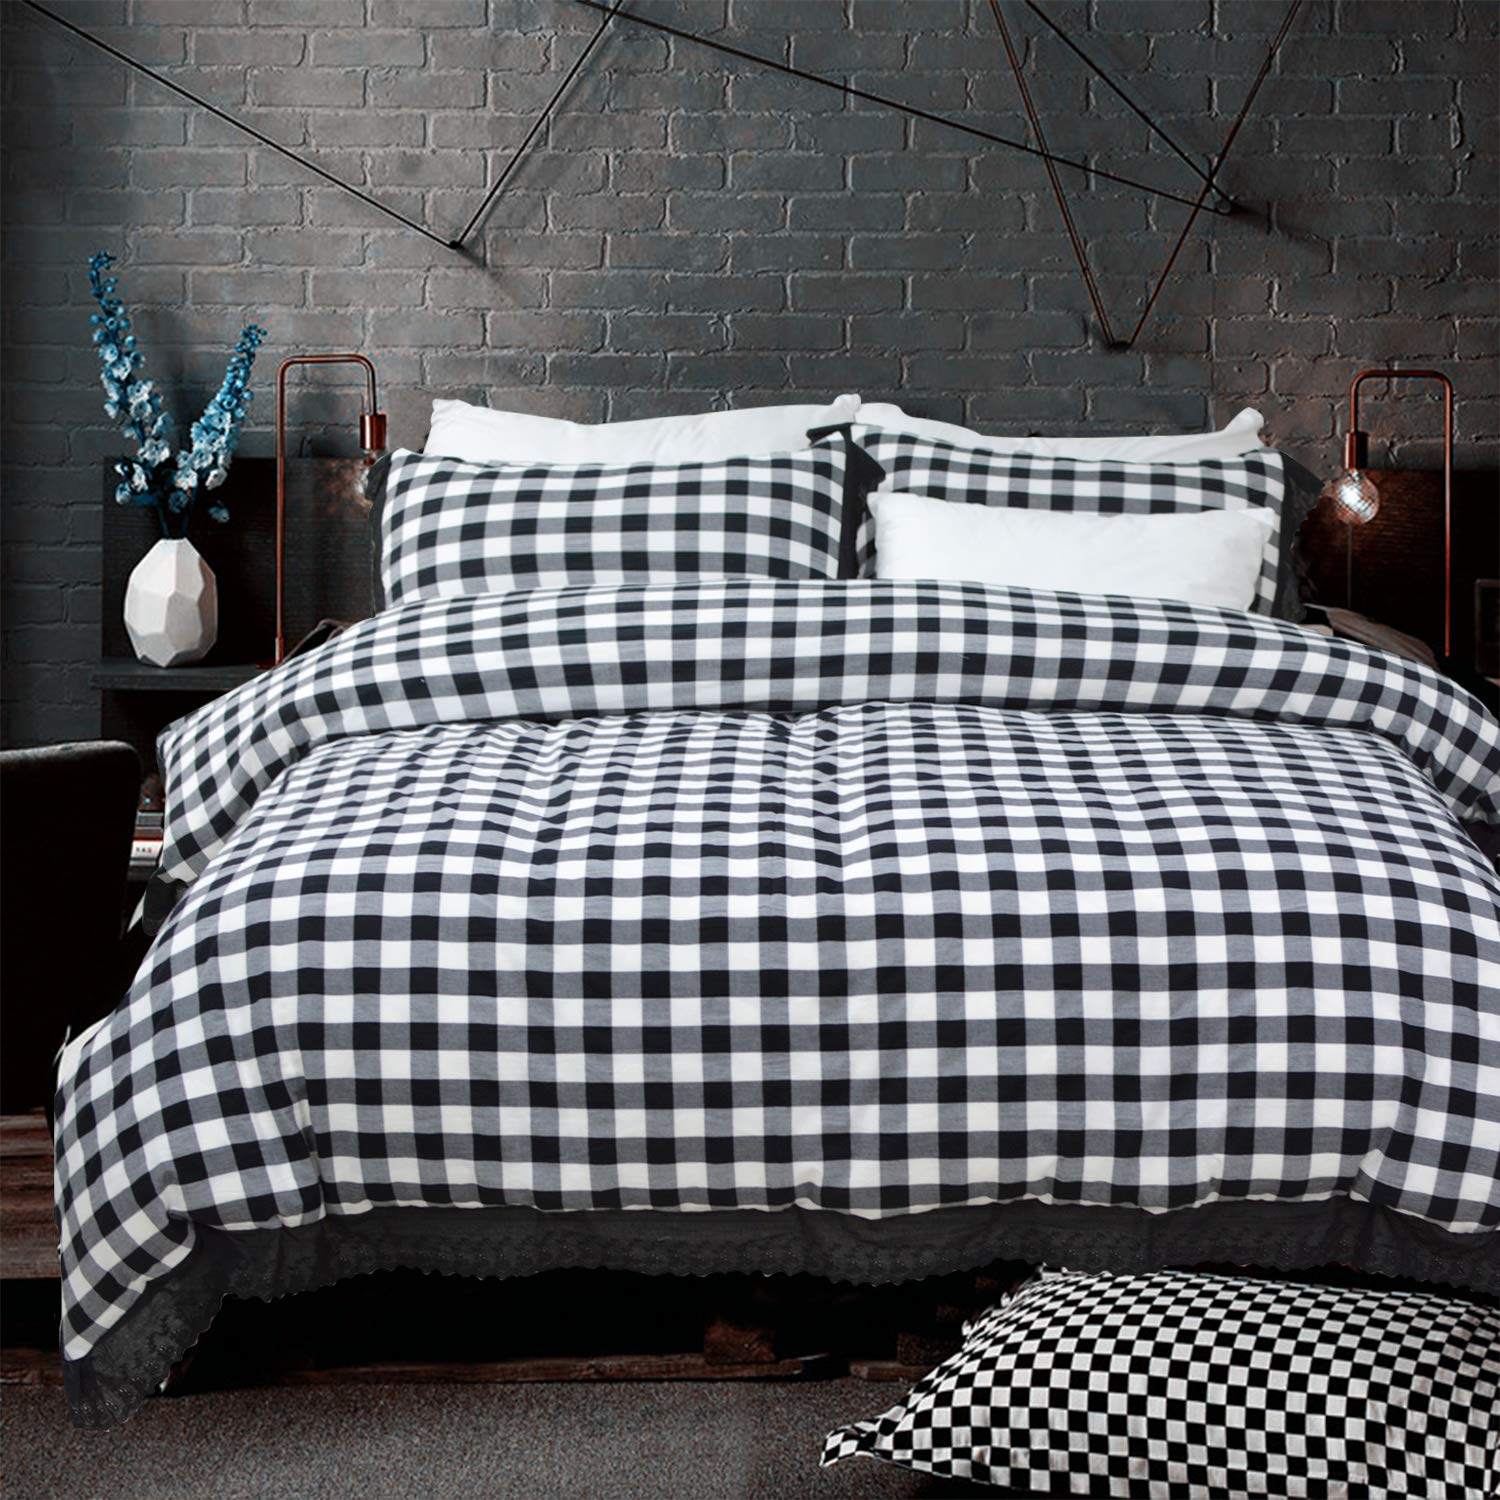 Softta Duvet Cover King Bedding Set Black and White Buffalo Plaid Bed Set Vintage Ruffle Check Grid Geometric 100% Washed Cotton with Zipper Ties 1 Duvet Cover + 2 Pillow Shams